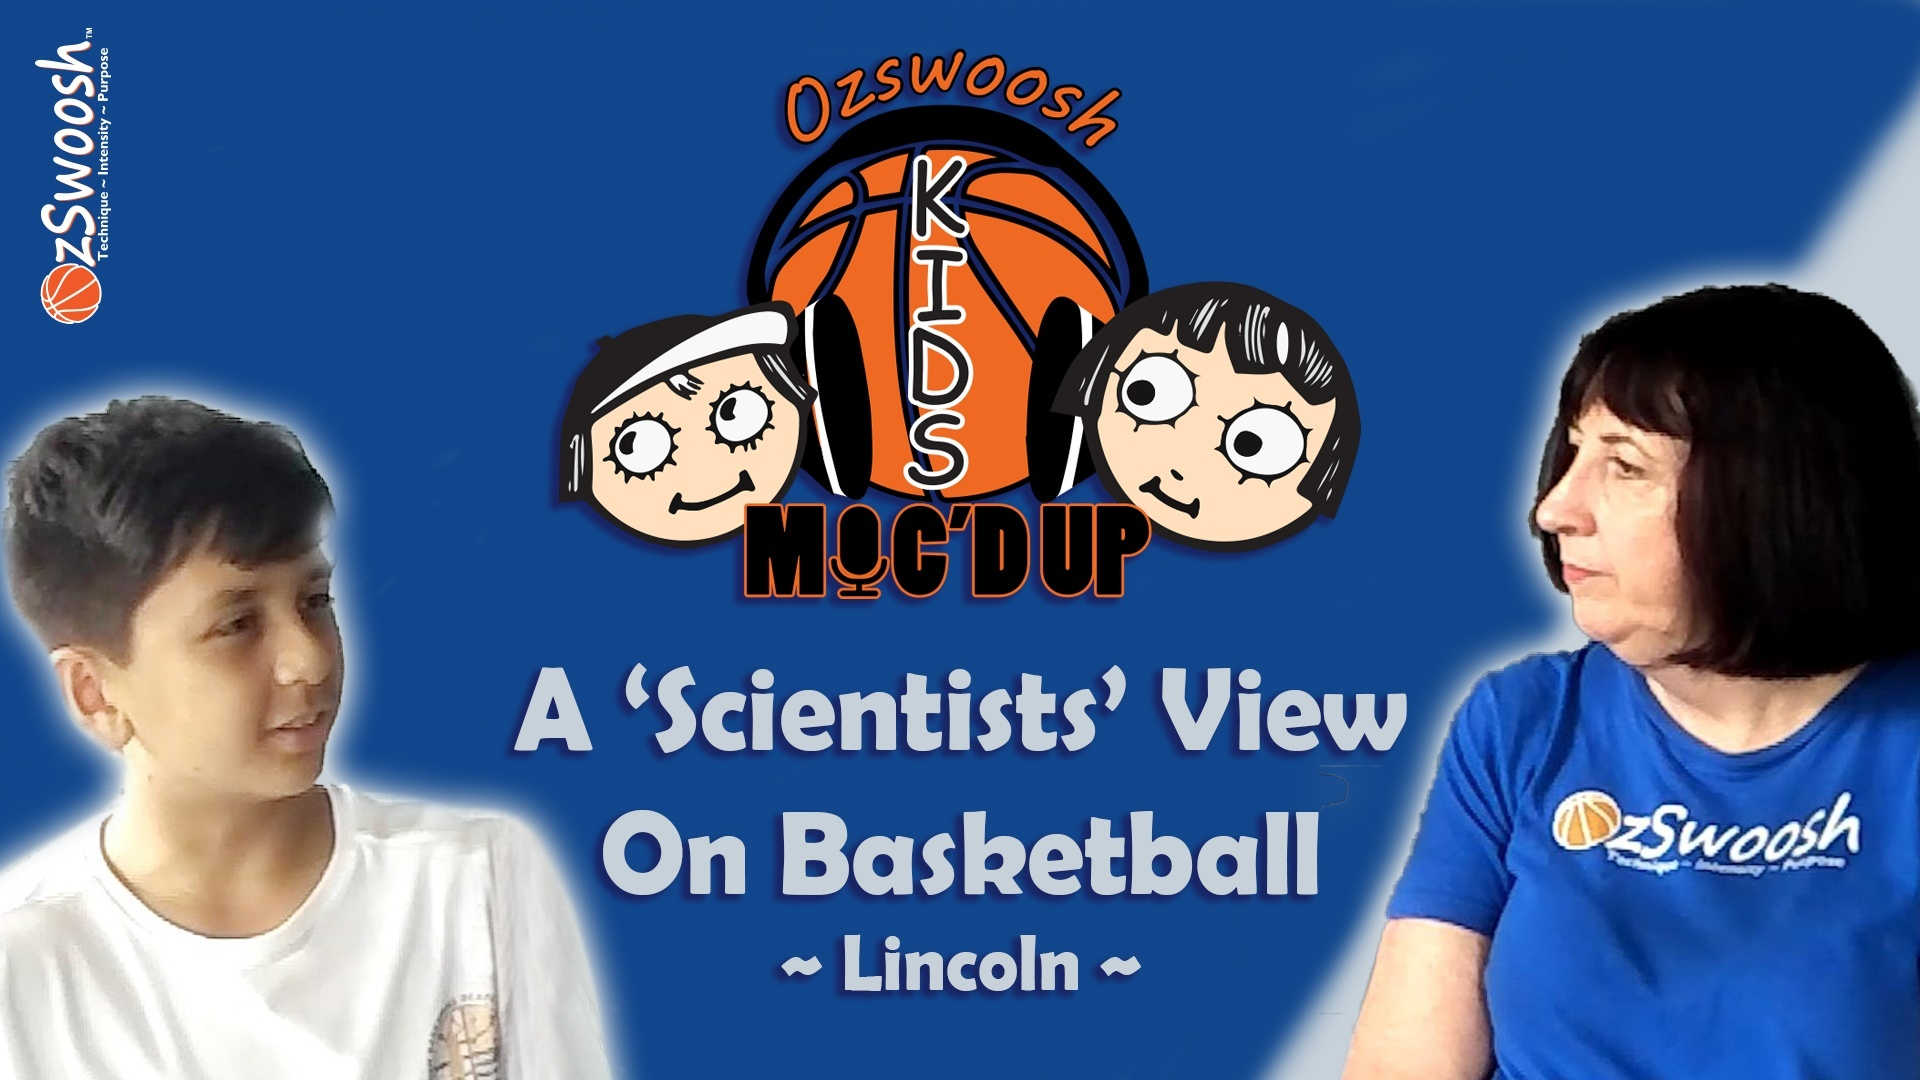 The science of basketball OzSwoosh Kids Micd up